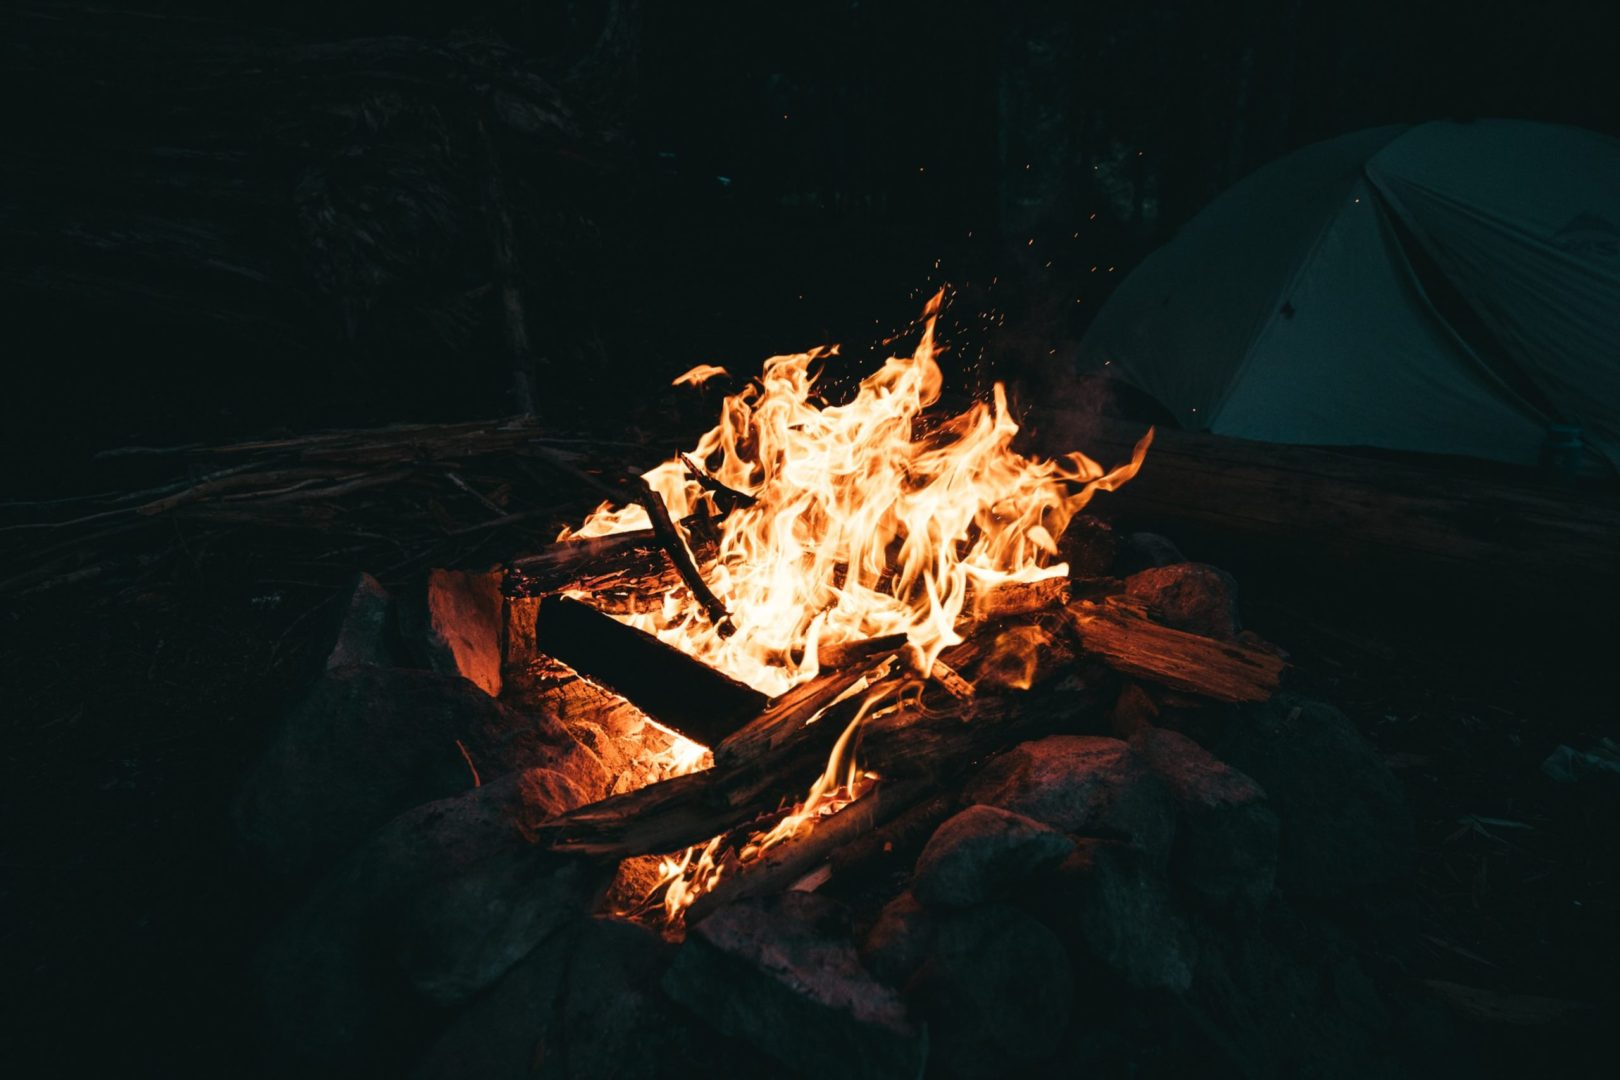 Fire burning with tent in background at night